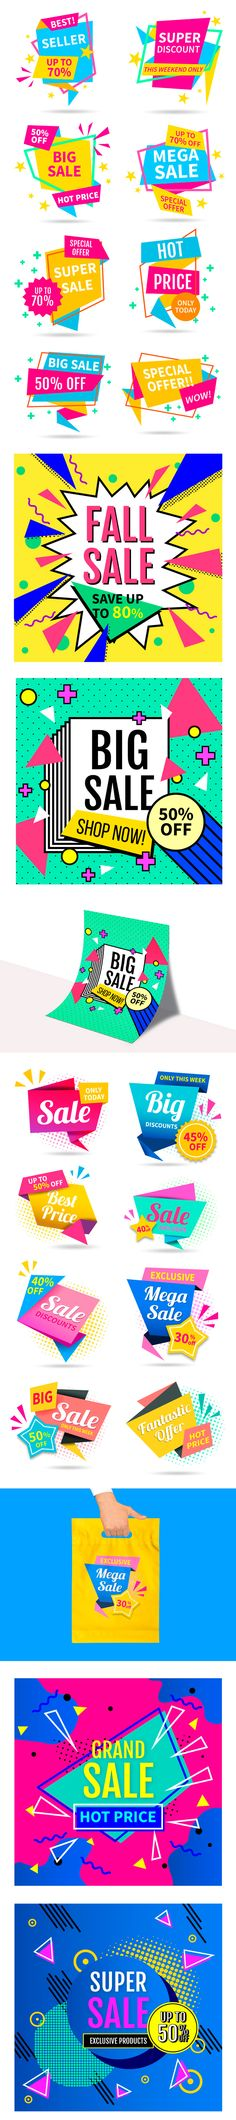 Free Colorful Sales Vector Set For Designers